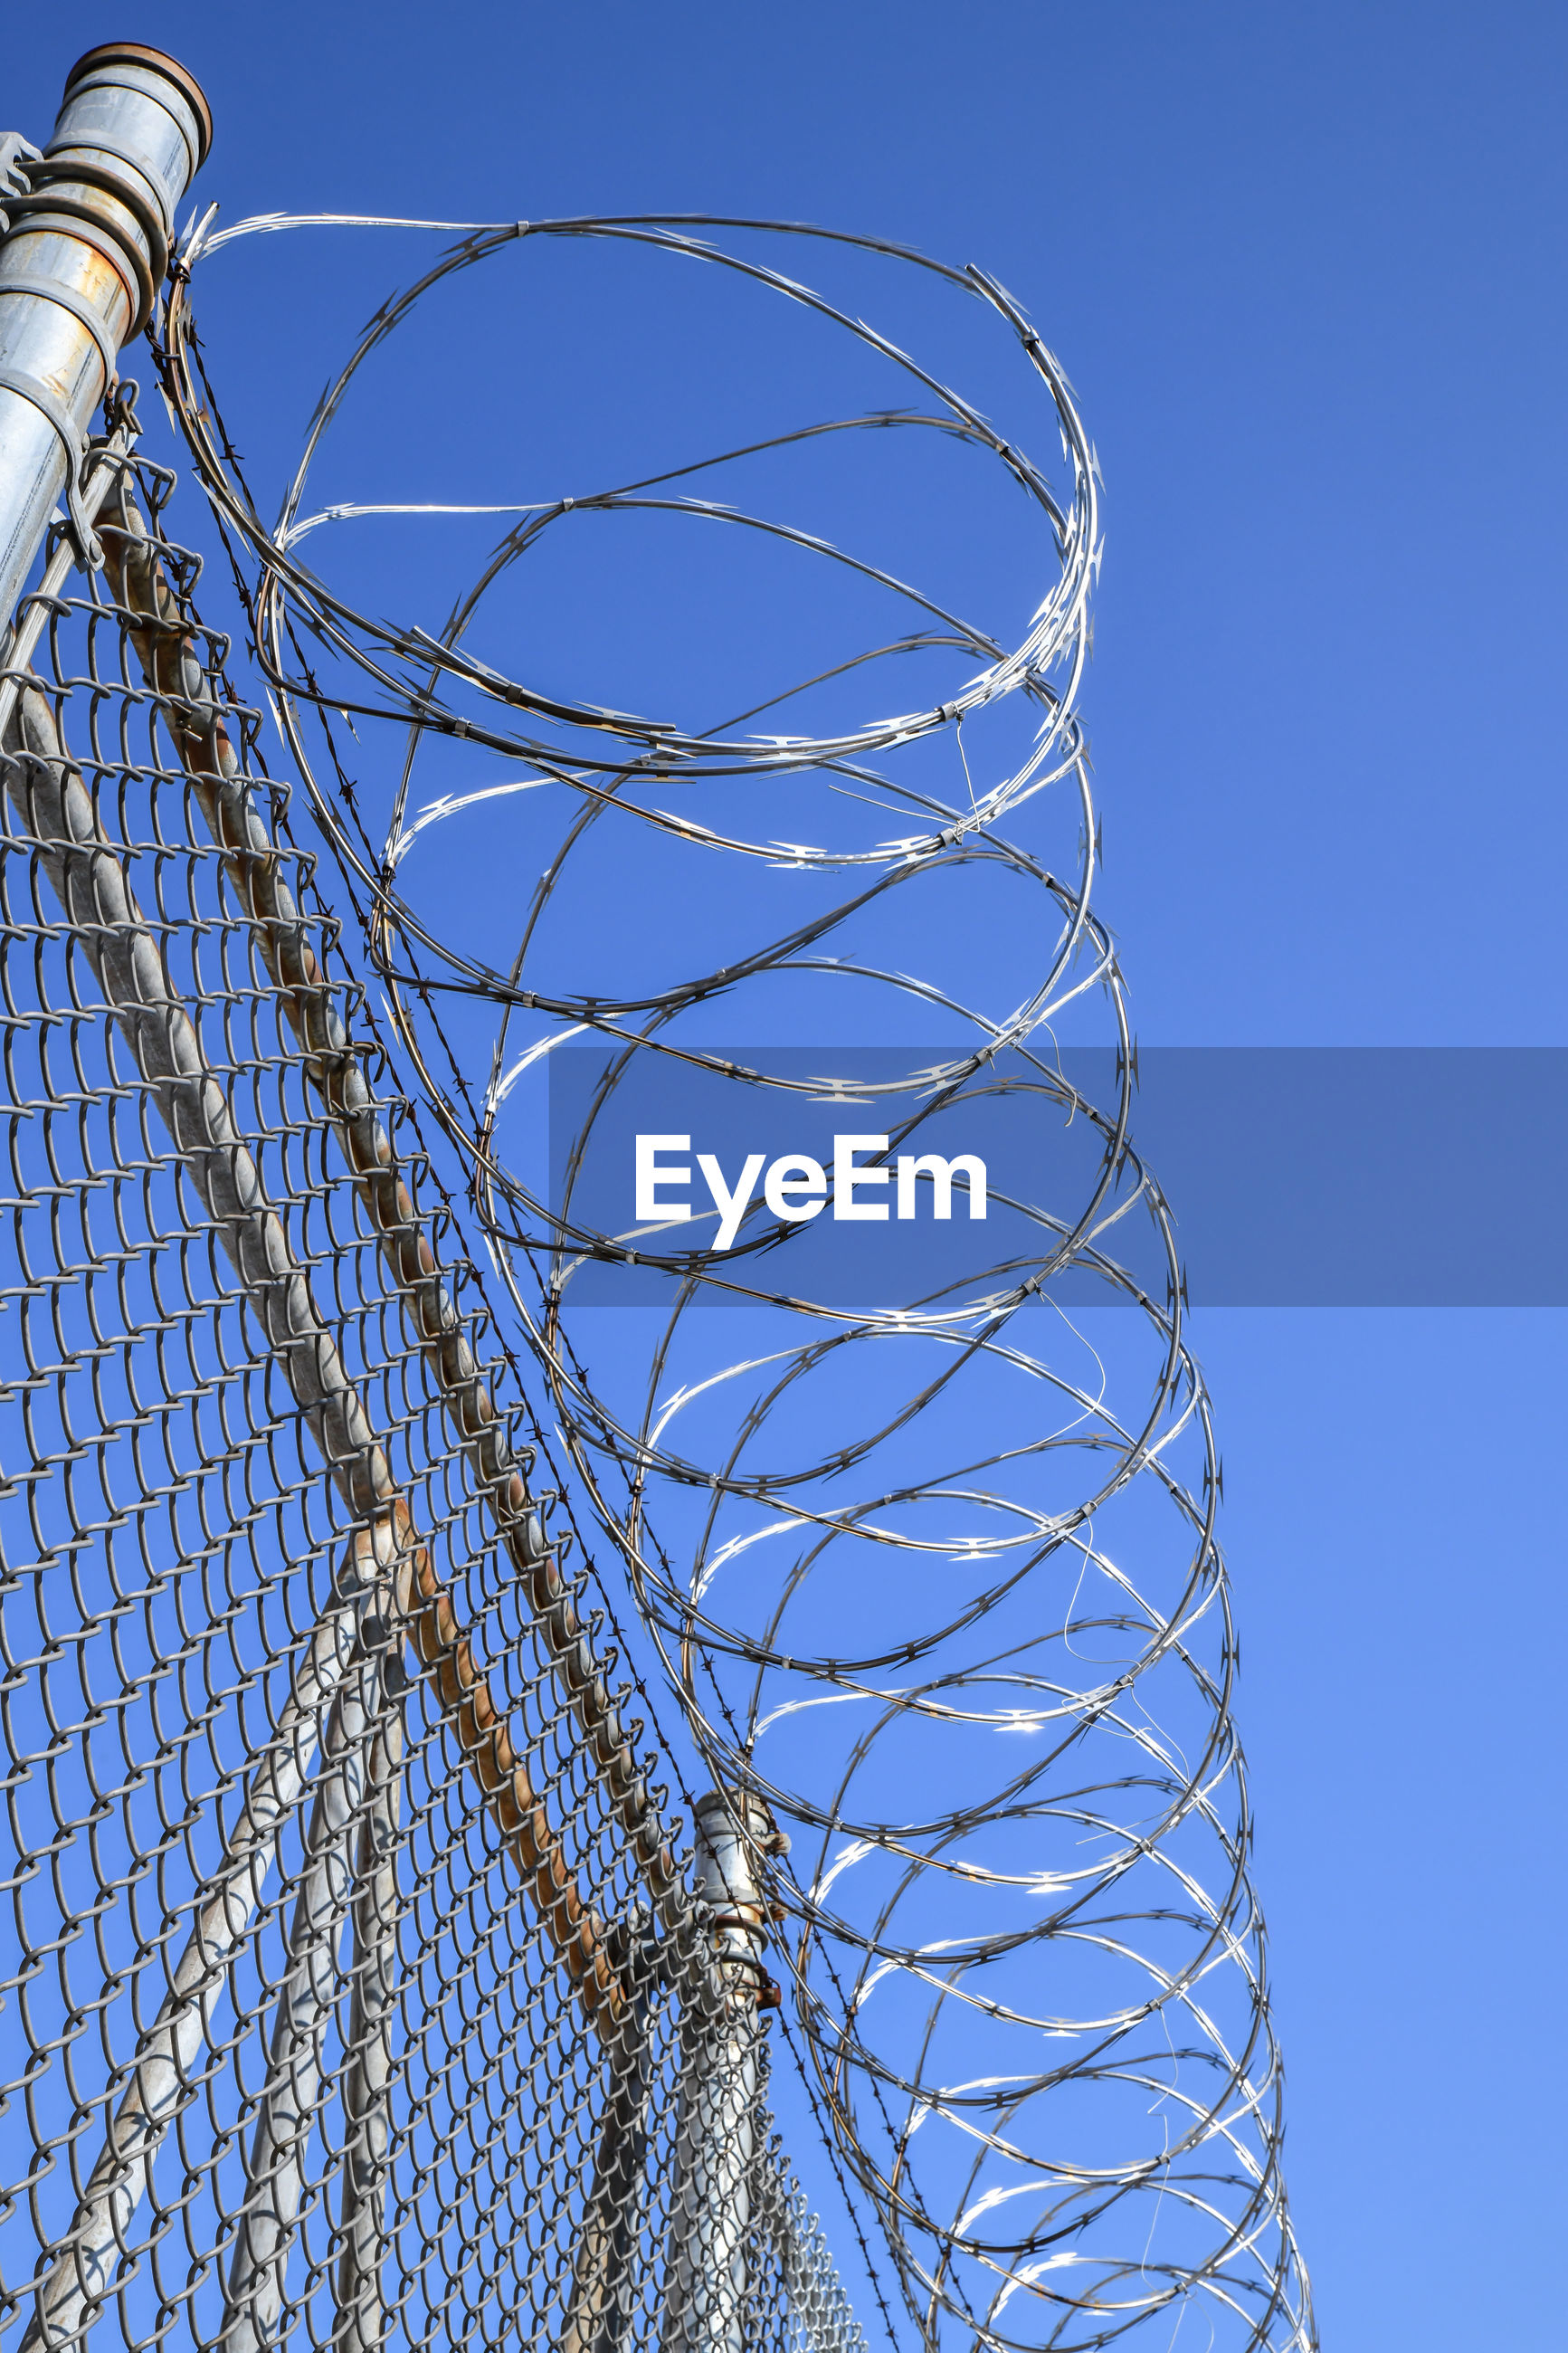 Razor wire on top of metal fence